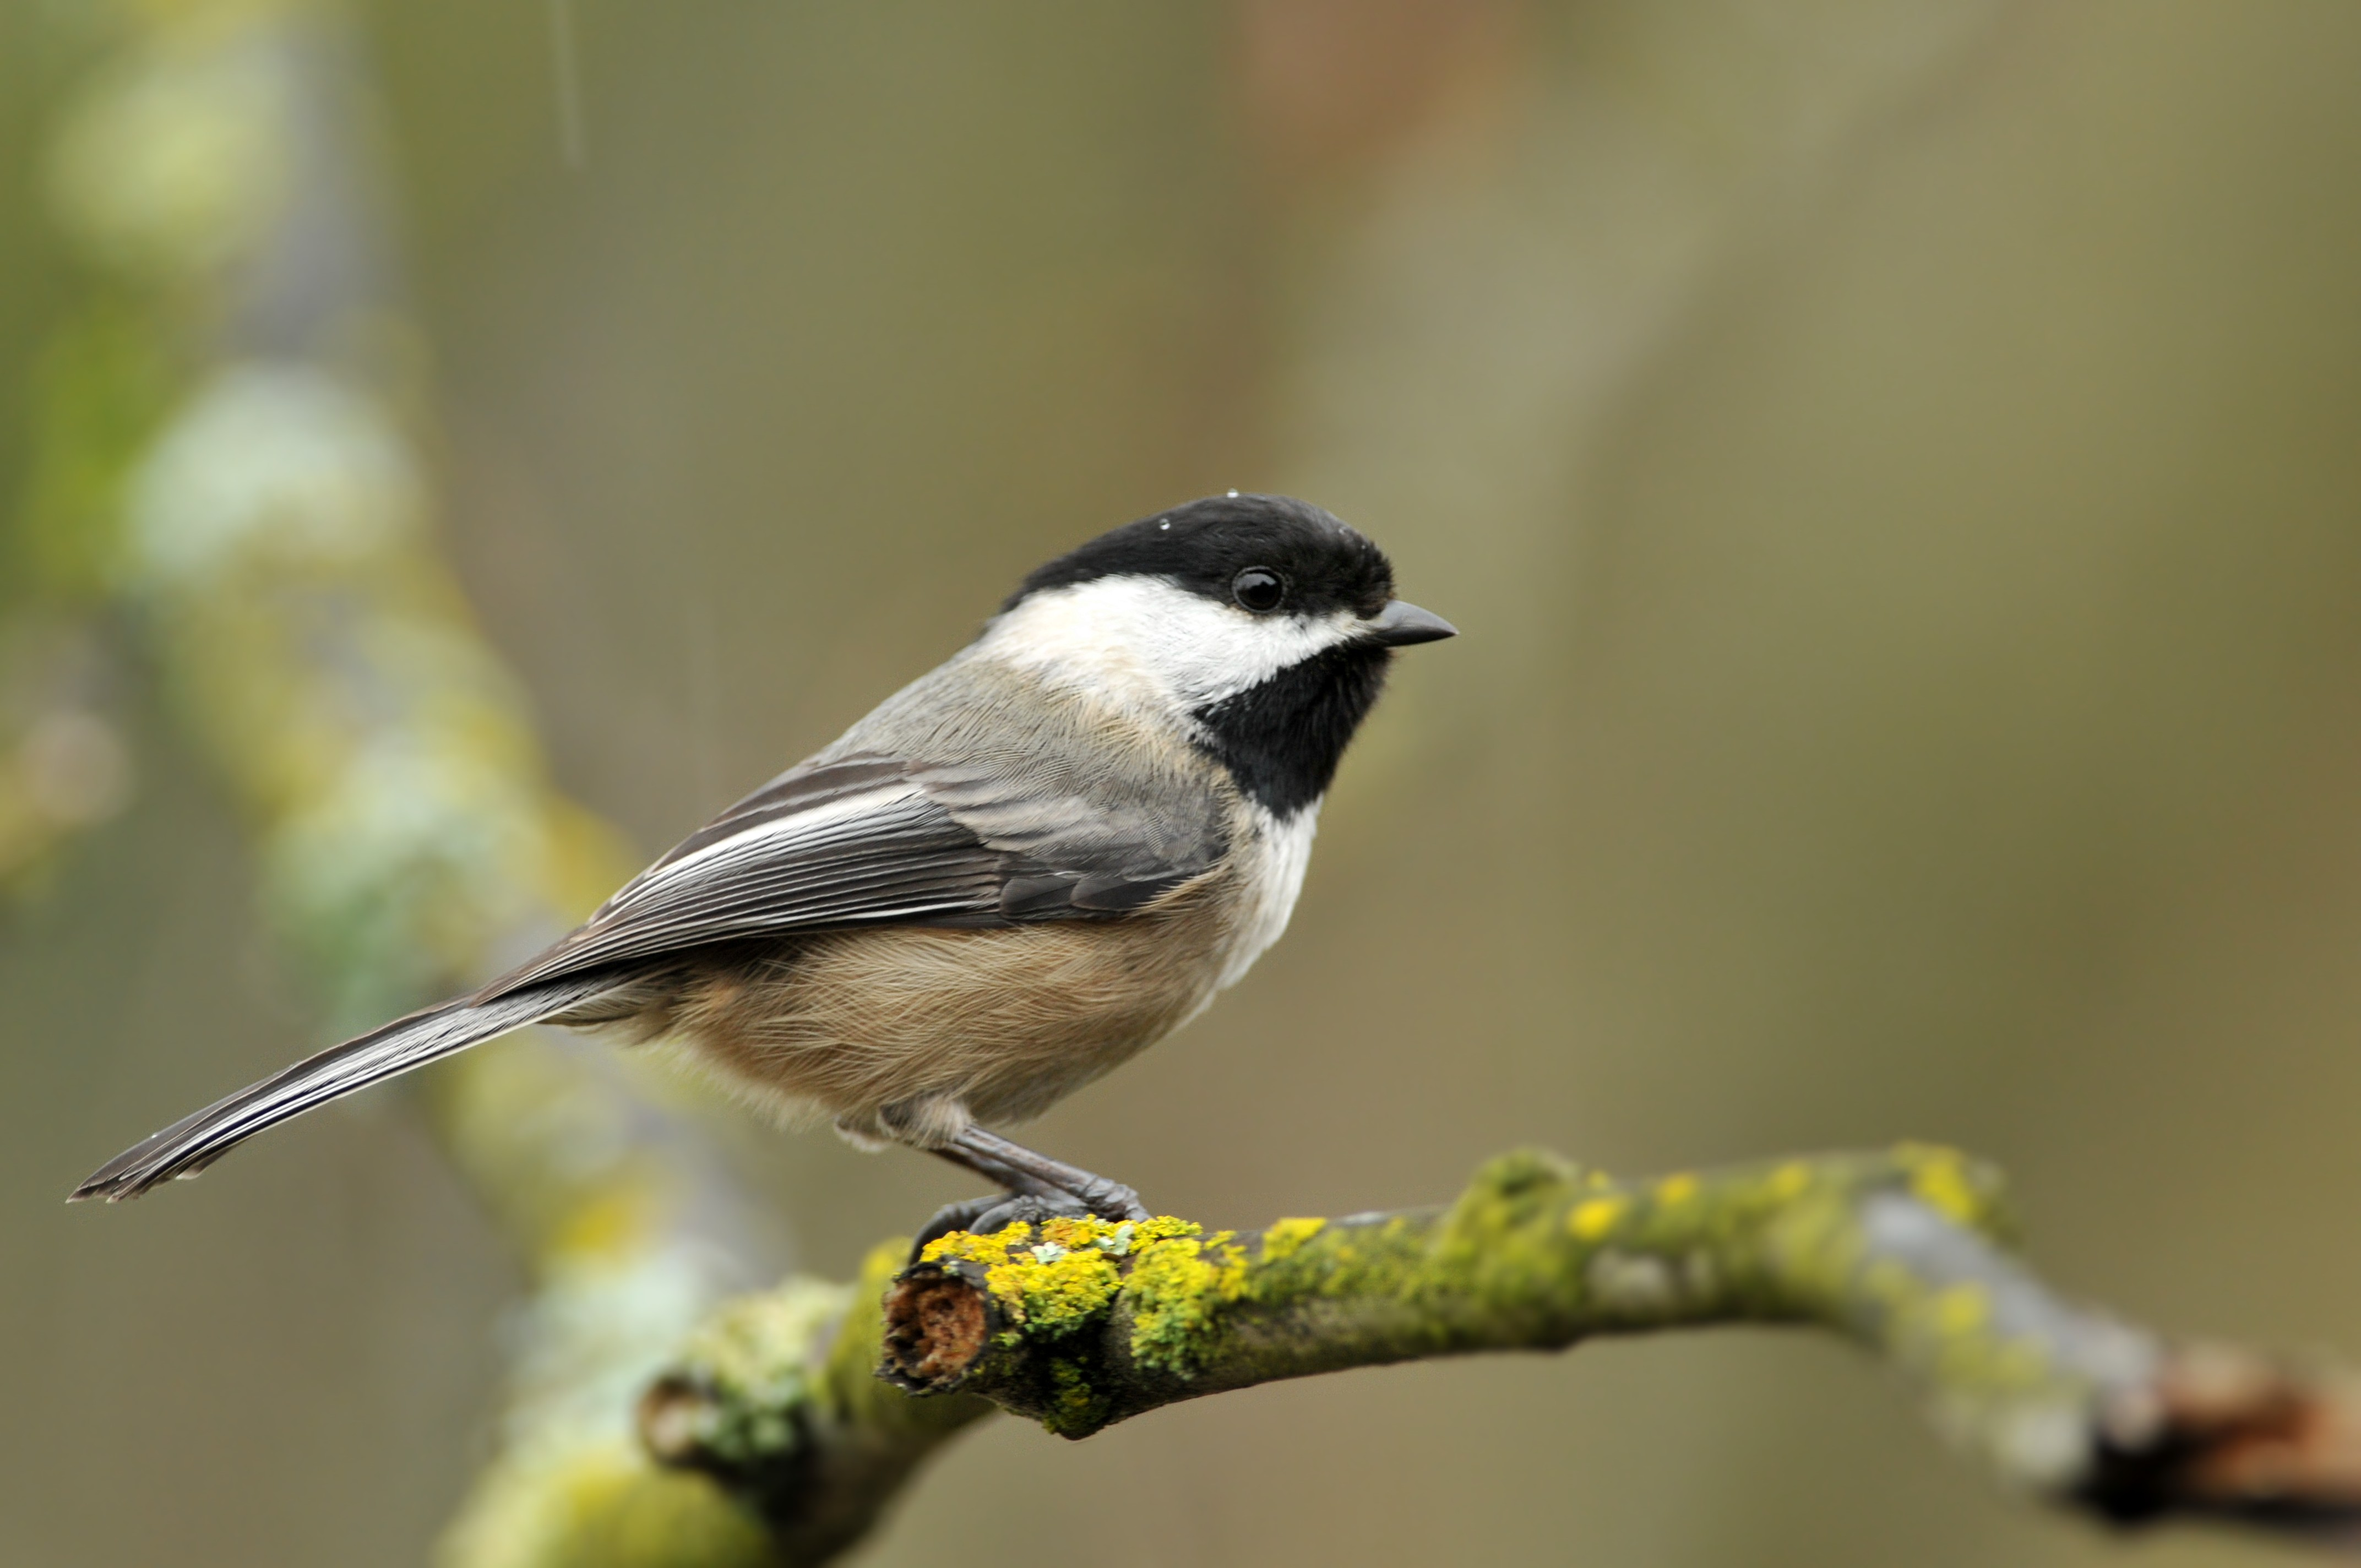 Black capped chickadee sits on a tree branch in the rain